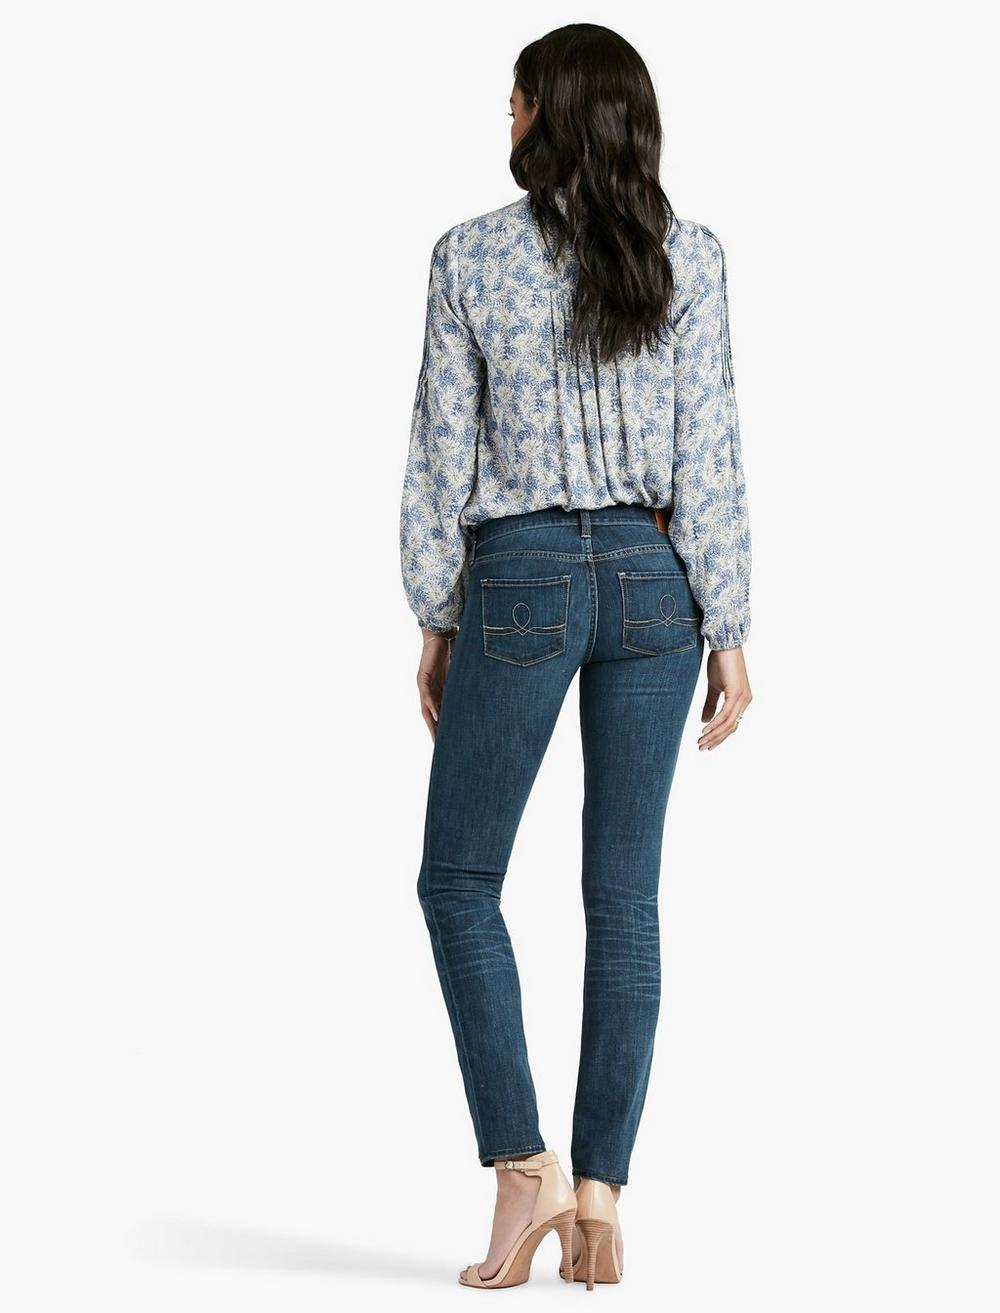 SOFIA MID RISE SKINNY JEAN IN BARRIER, image 3